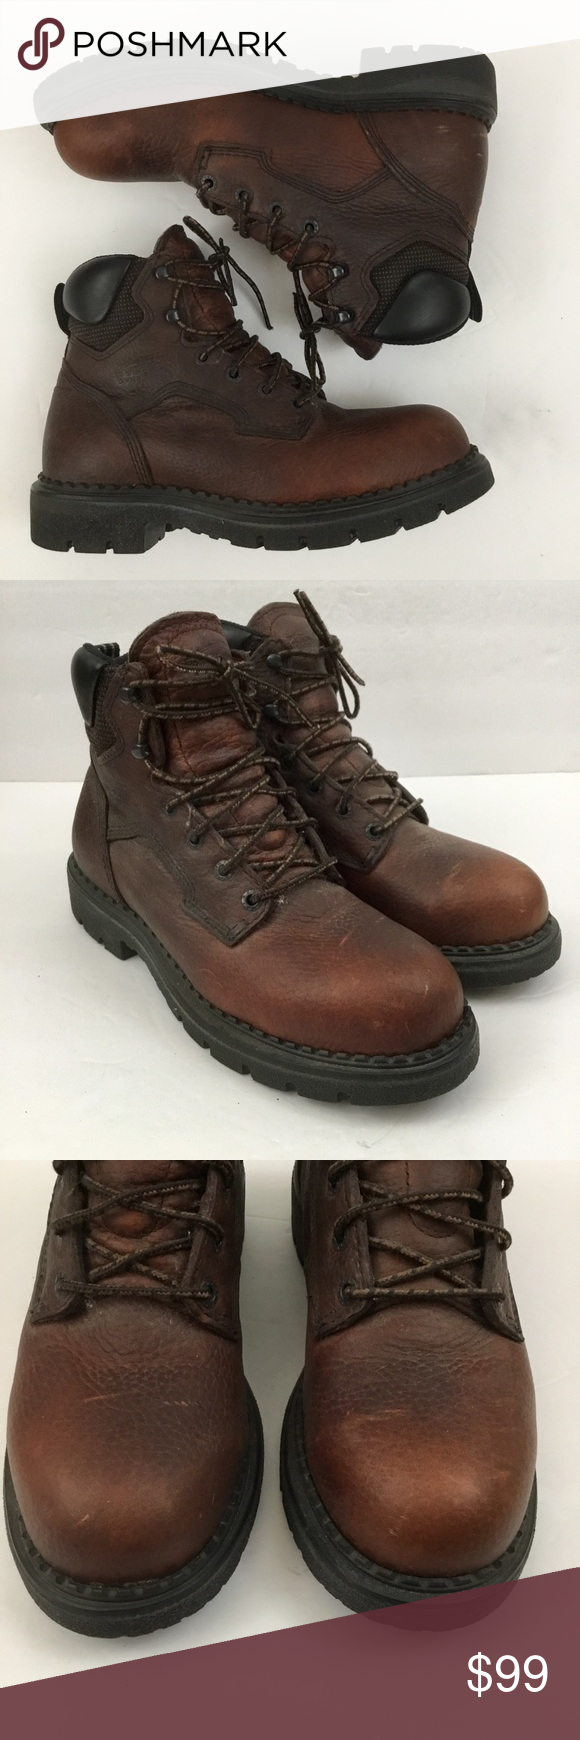 Red Wing Shoes Supersole Steel Toe Work Boots Red Wing